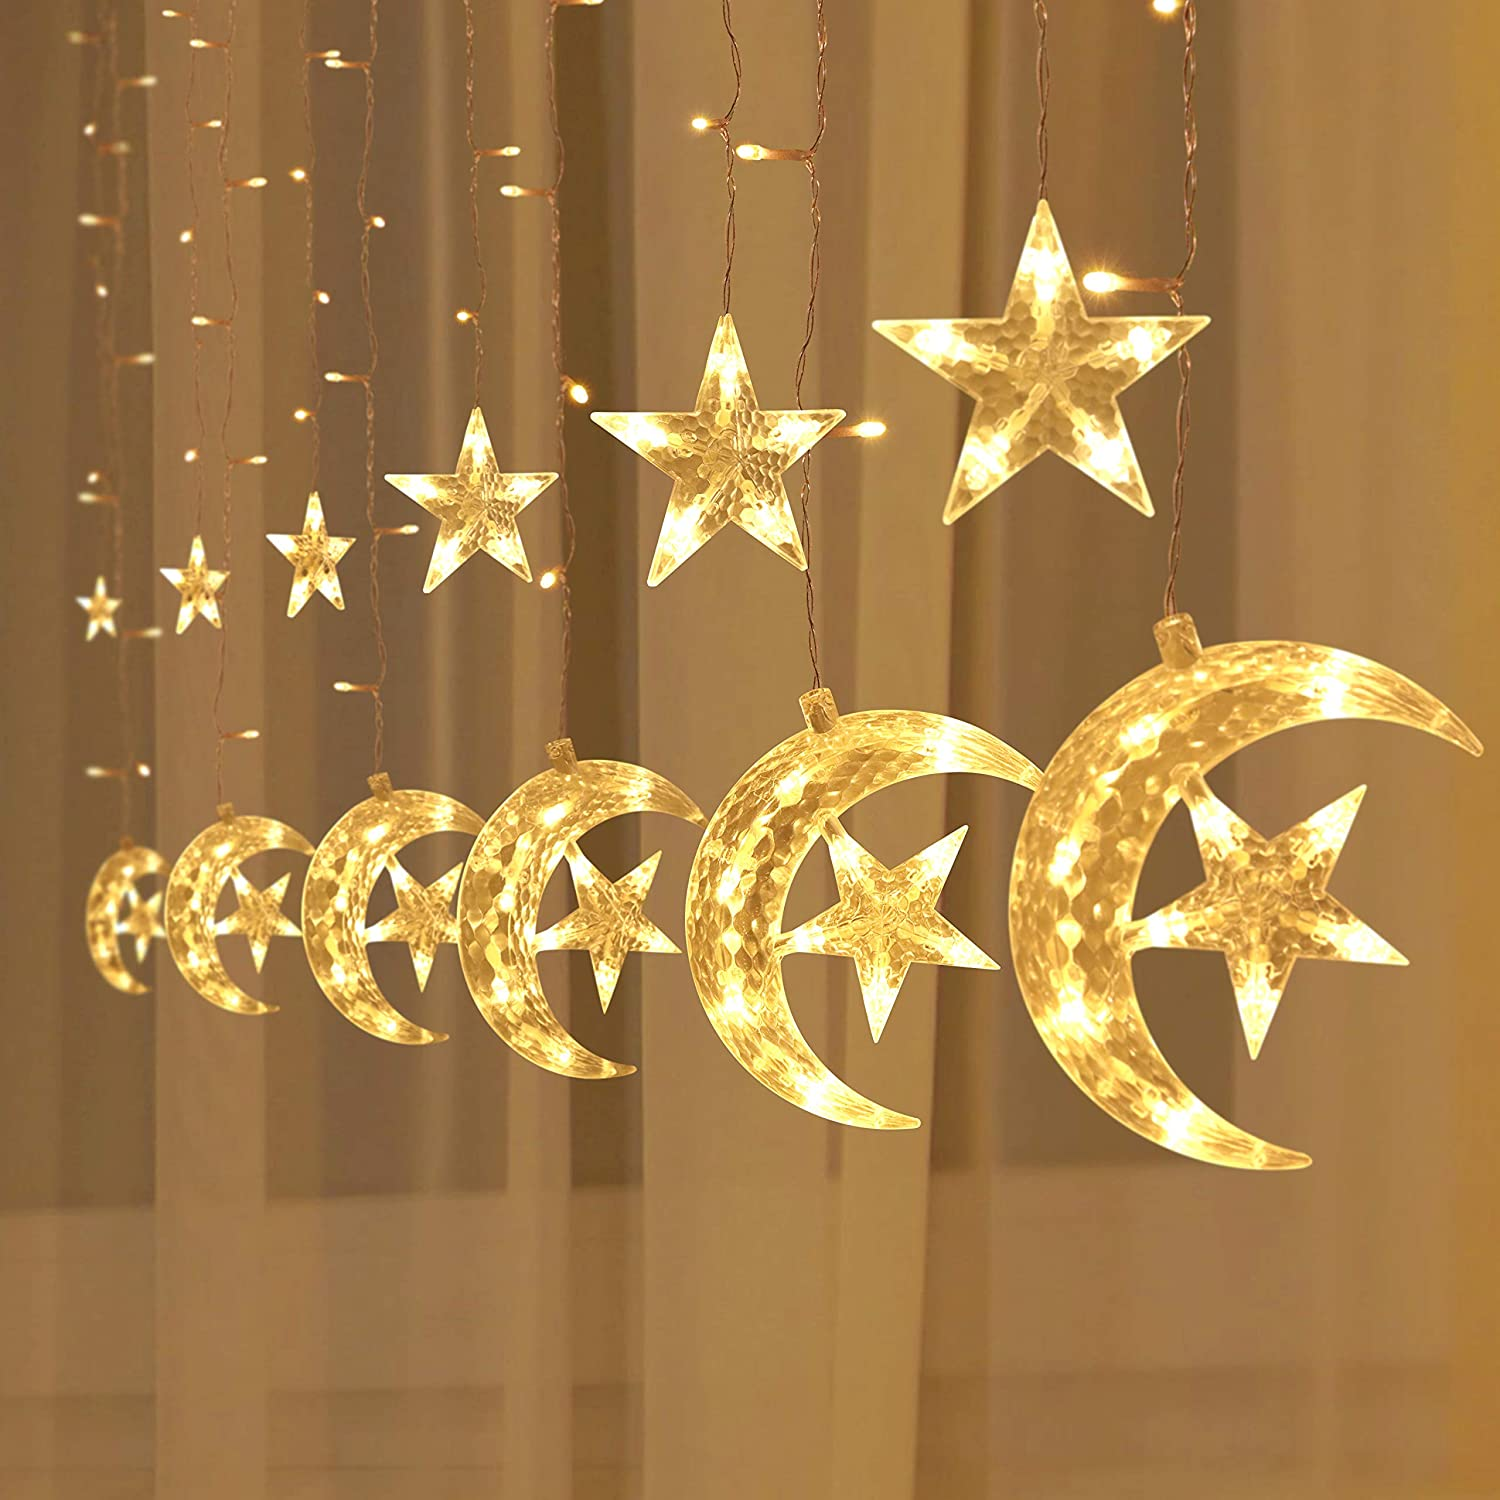 138 LED Moon Star Window Curtain String Lights Fairy Lights 8 Flashing Modes Decoration Remote Control for Christmas Home Holiday Festival Party Wedding Bedroom Indoor Outdoor Decor (Warm White)